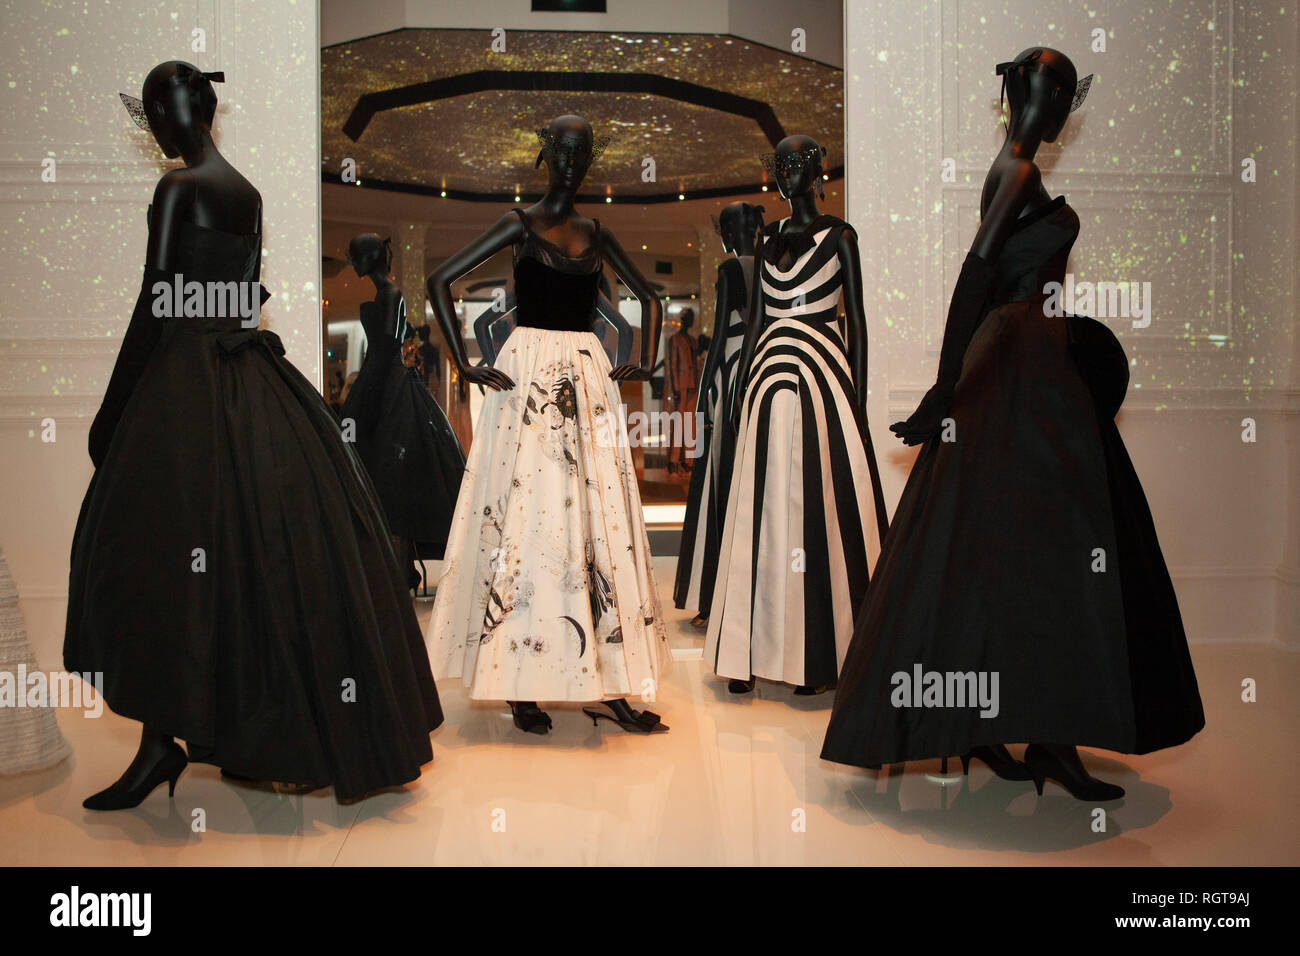 Dior 1950s High Resolution Stock Photography And Images Alamy